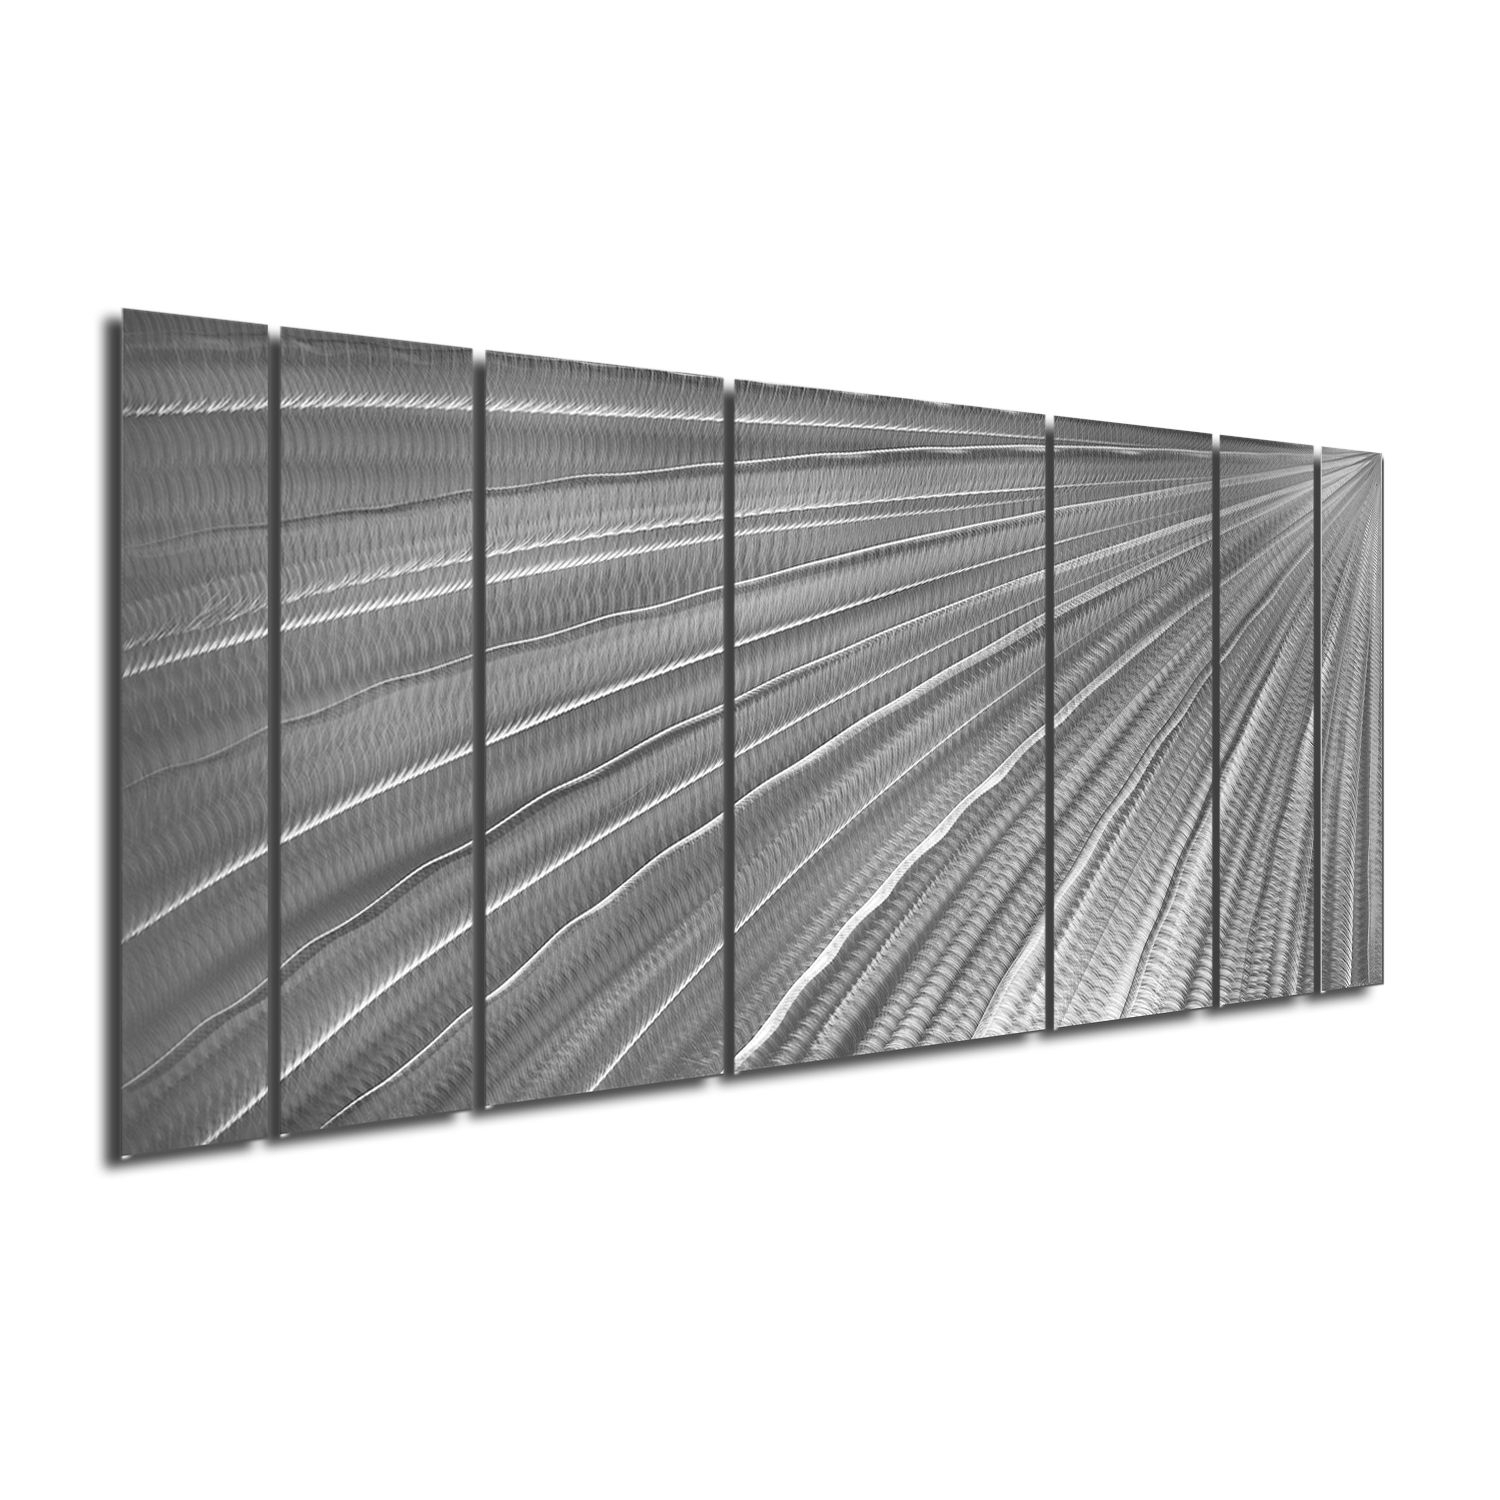 Discount Modern Metal Art! Sale, Clearance Prices | Mad For Current Kingdom Abstract Metal Wall Art (View 6 of 20)